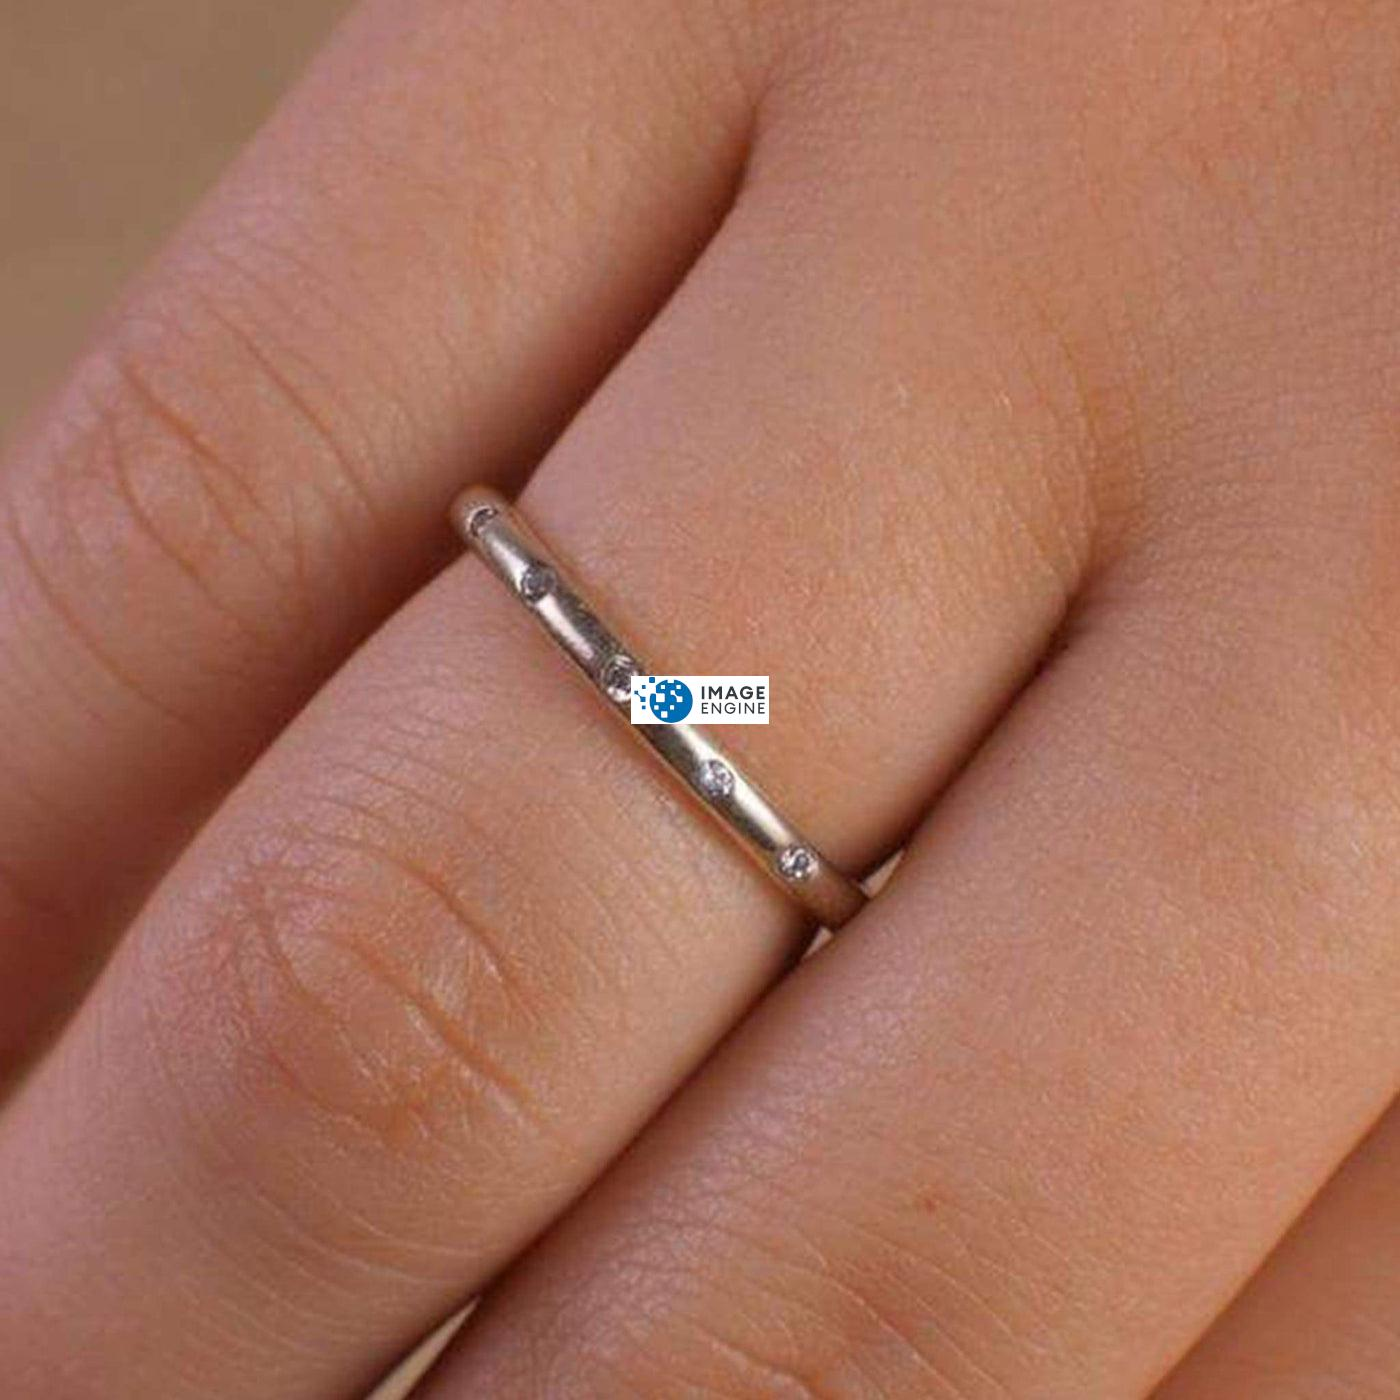 Droplet Ring - Higher Angle View - 925 Sterling Silver